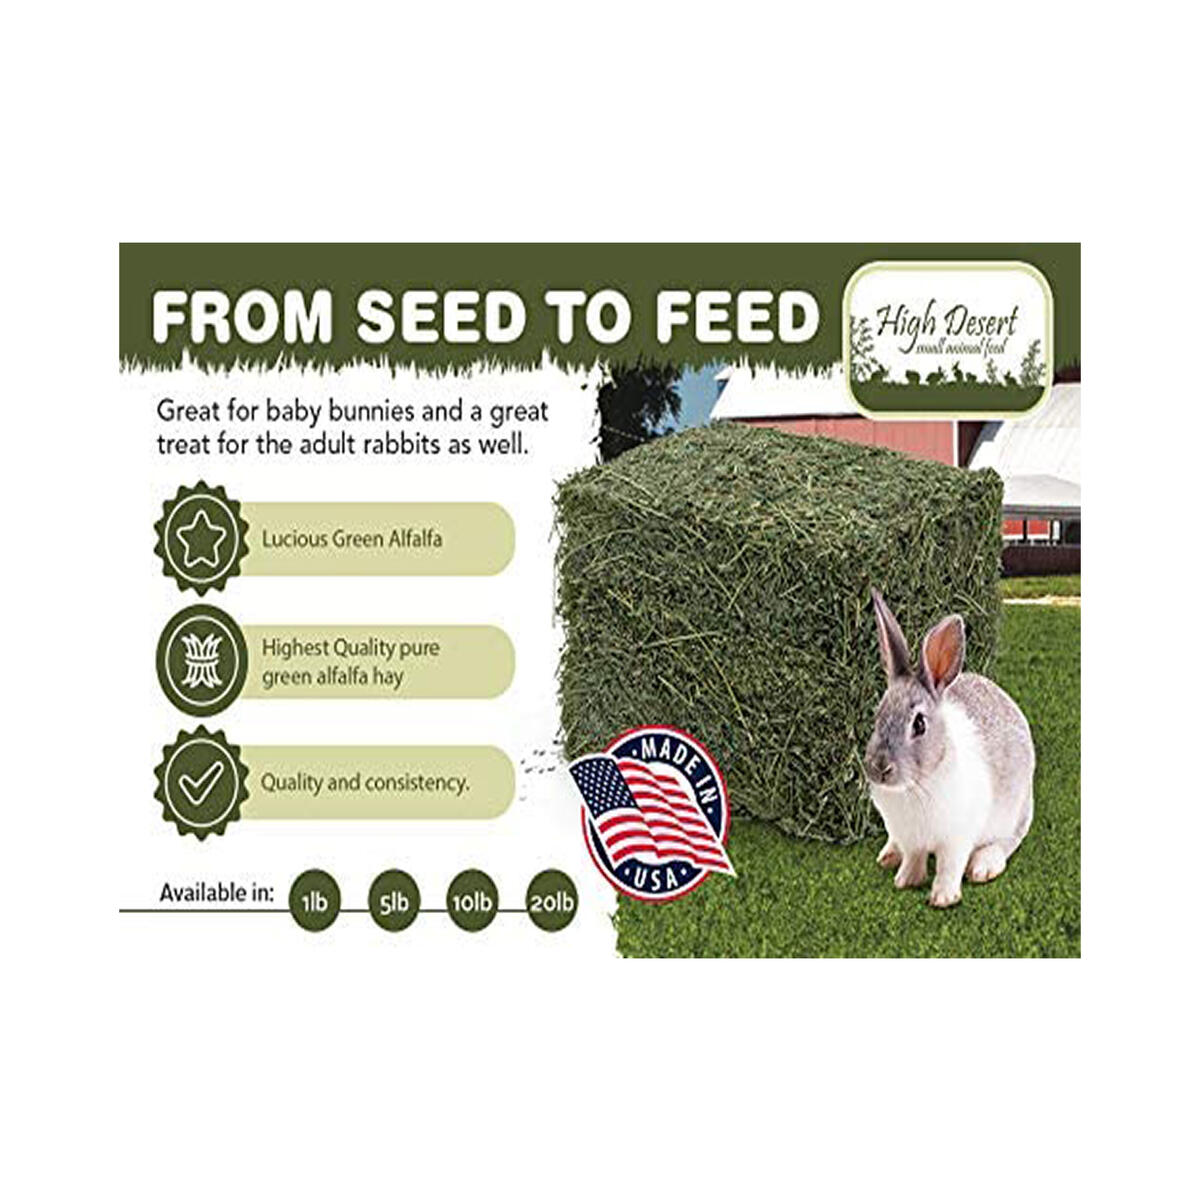 Alfalfa Hay, 1 lb - Dried Natural Alfalfa Hay for Rabbits, Guinea Pigs, Chinchillas, and Ferrets - Protein and Fiber Rich Food for Small Animals - Healthy Pet Food